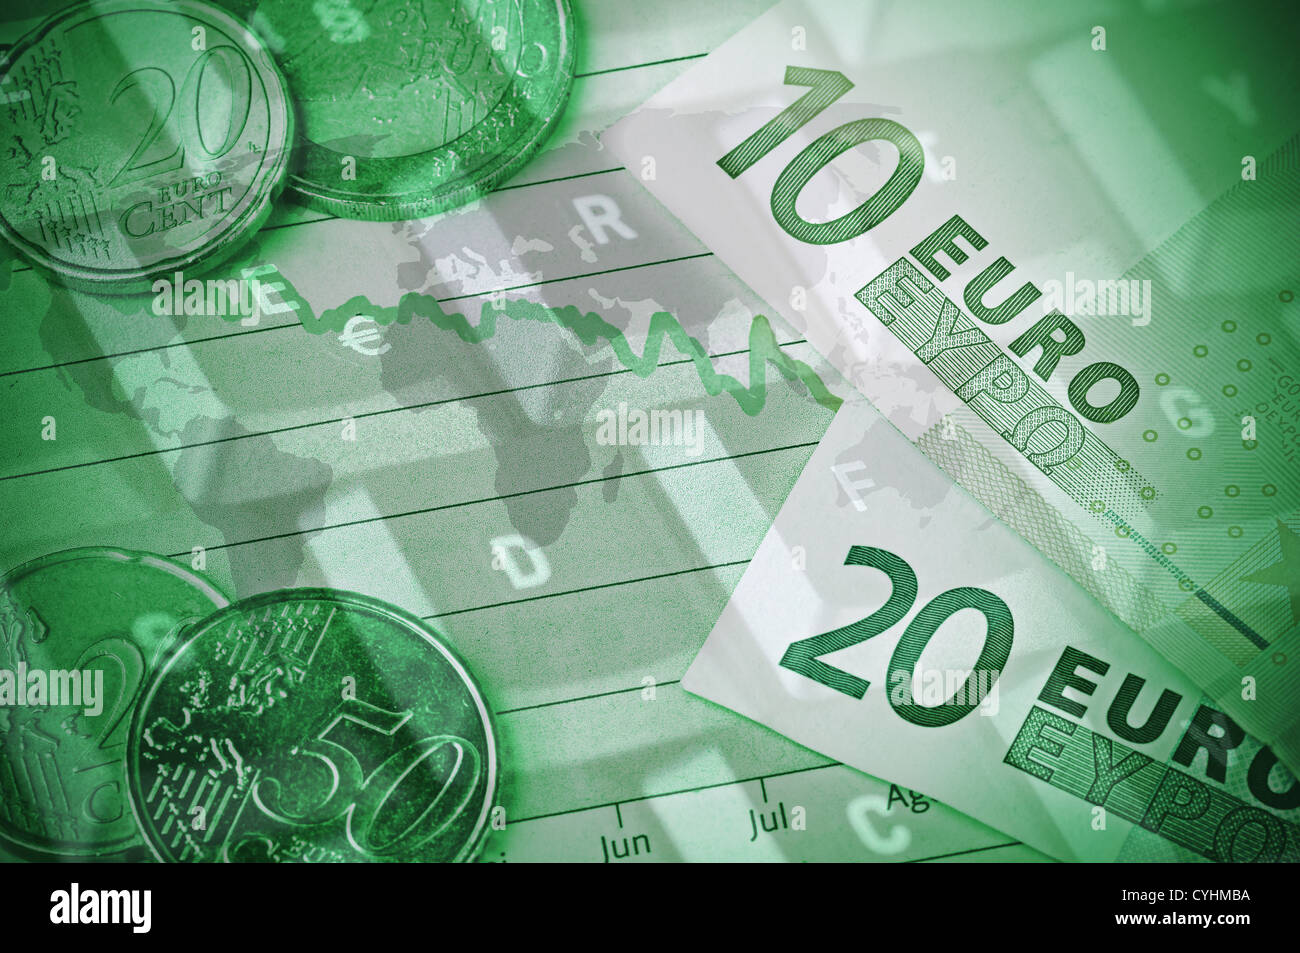 A couple of bills and coins on top of a graph together with a world map and a computer keyboard. - Stock Image